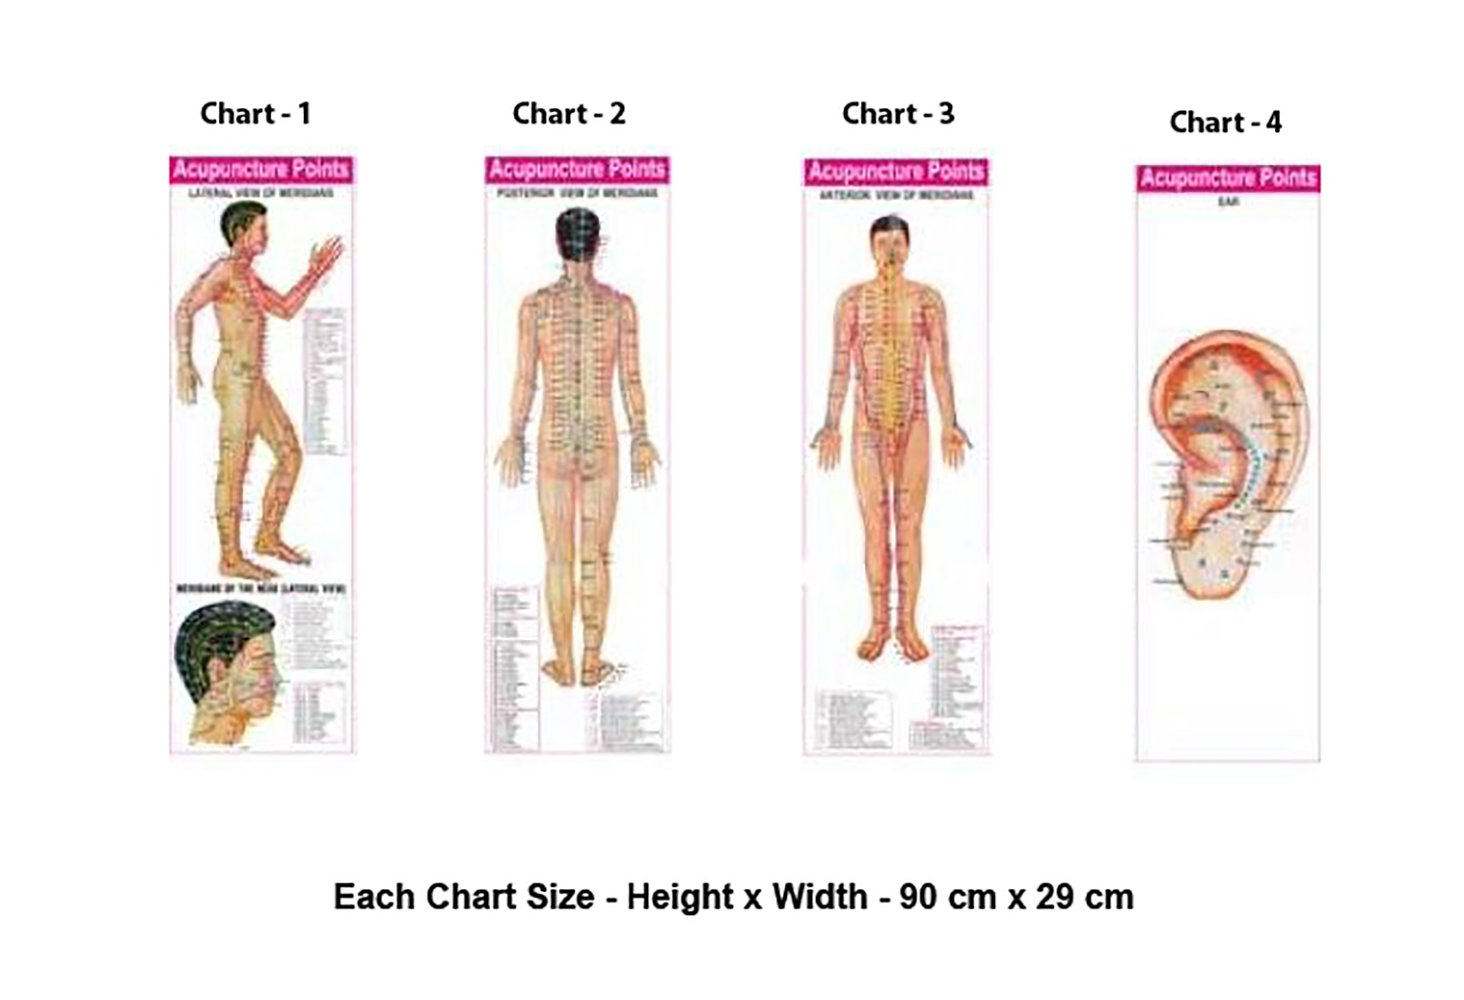 Acupuncture Points (3 Body + 1 Ear) Charts (Set of 4) + Free 5 Sujok Rings